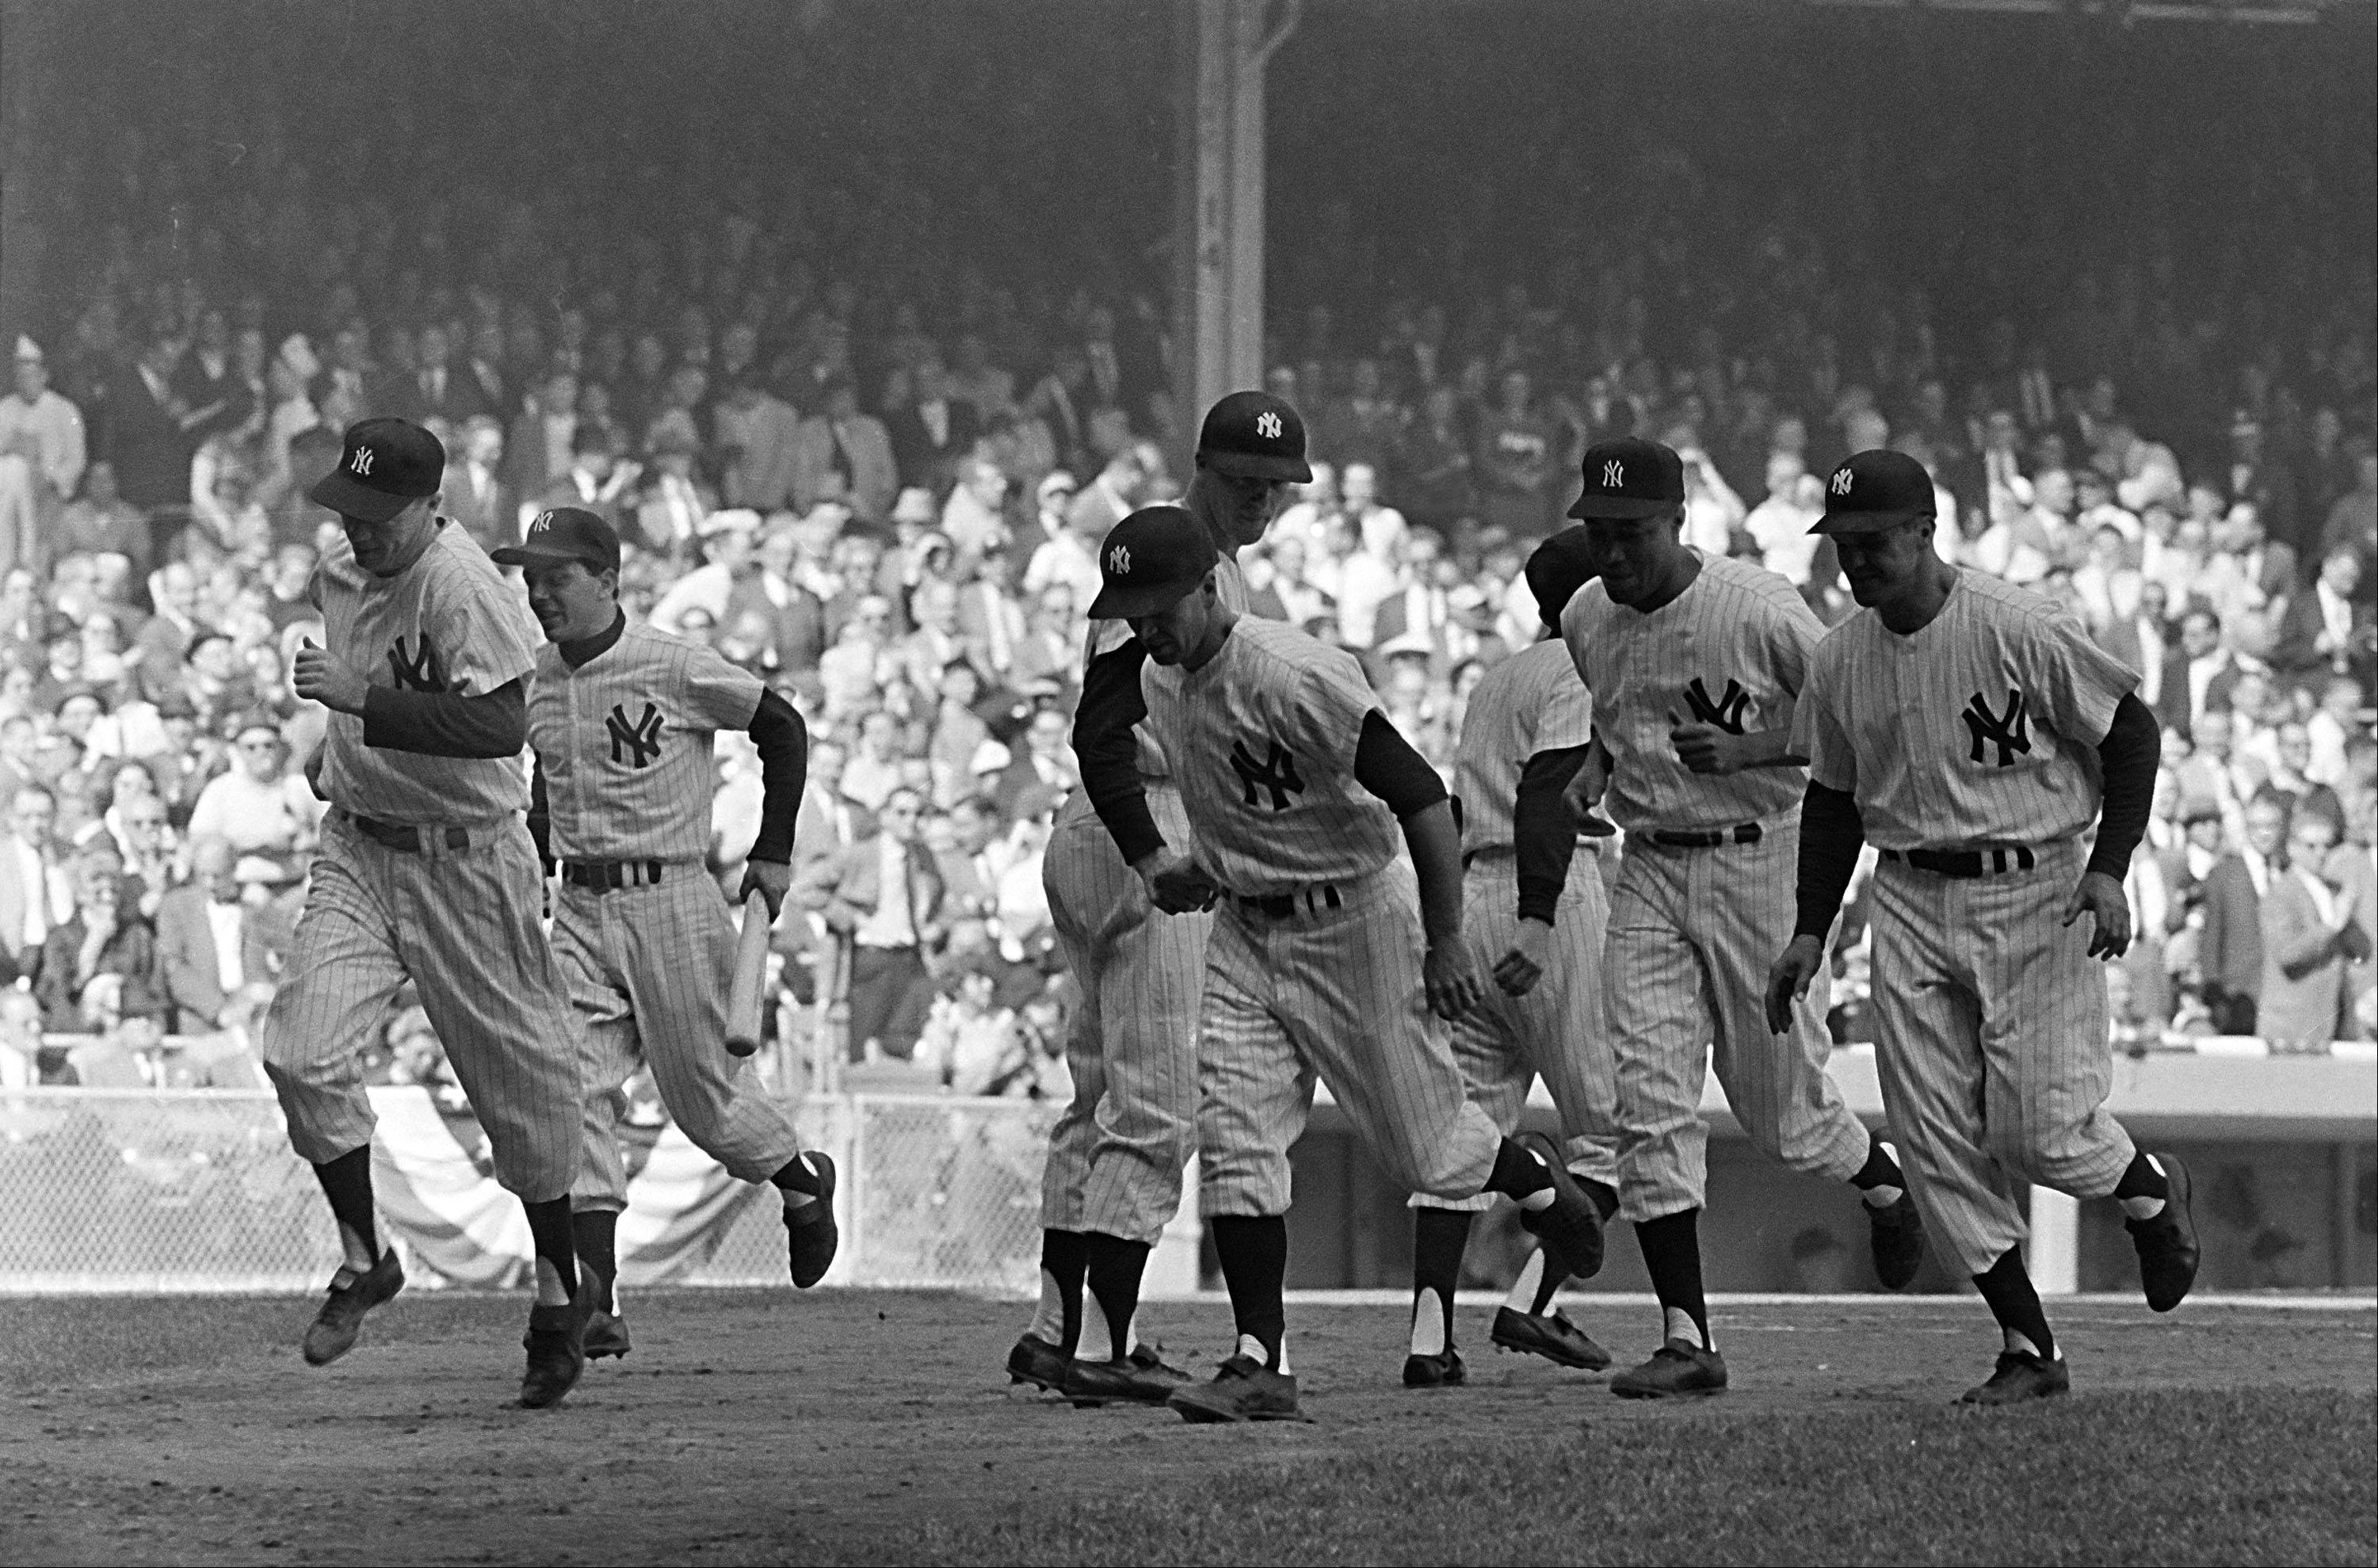 The Yankees were storming against the Pirates on Bobby Richardson's grand slam home run in first inning of third World Series game at Yankee Stadium, Oct. 8, 1960. And here they storm into dugout after the blast. Richardson is in center, head down, shaking hands with the next batter Tony Kubek. From left: Gil McDougald, batboy, Richardson, Elston Howard and Bill Skowron.